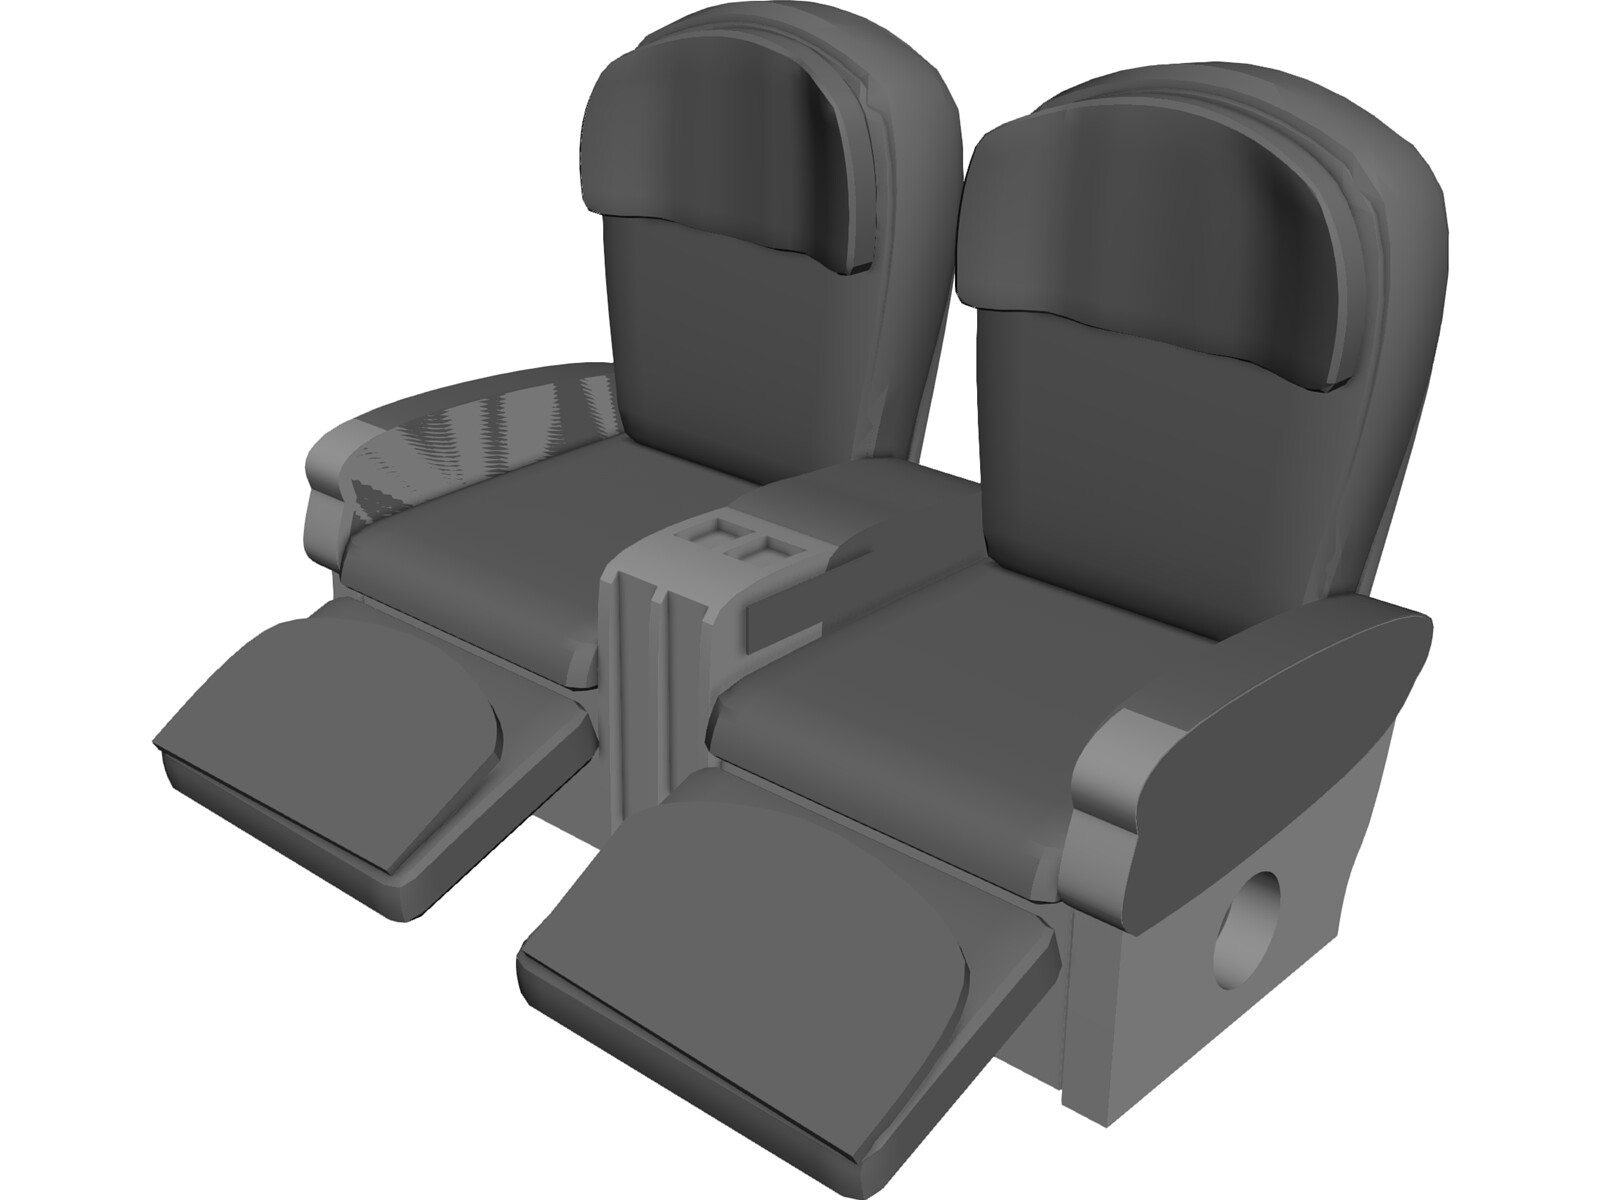 seats airplane 3d model 3d cad browser. Black Bedroom Furniture Sets. Home Design Ideas